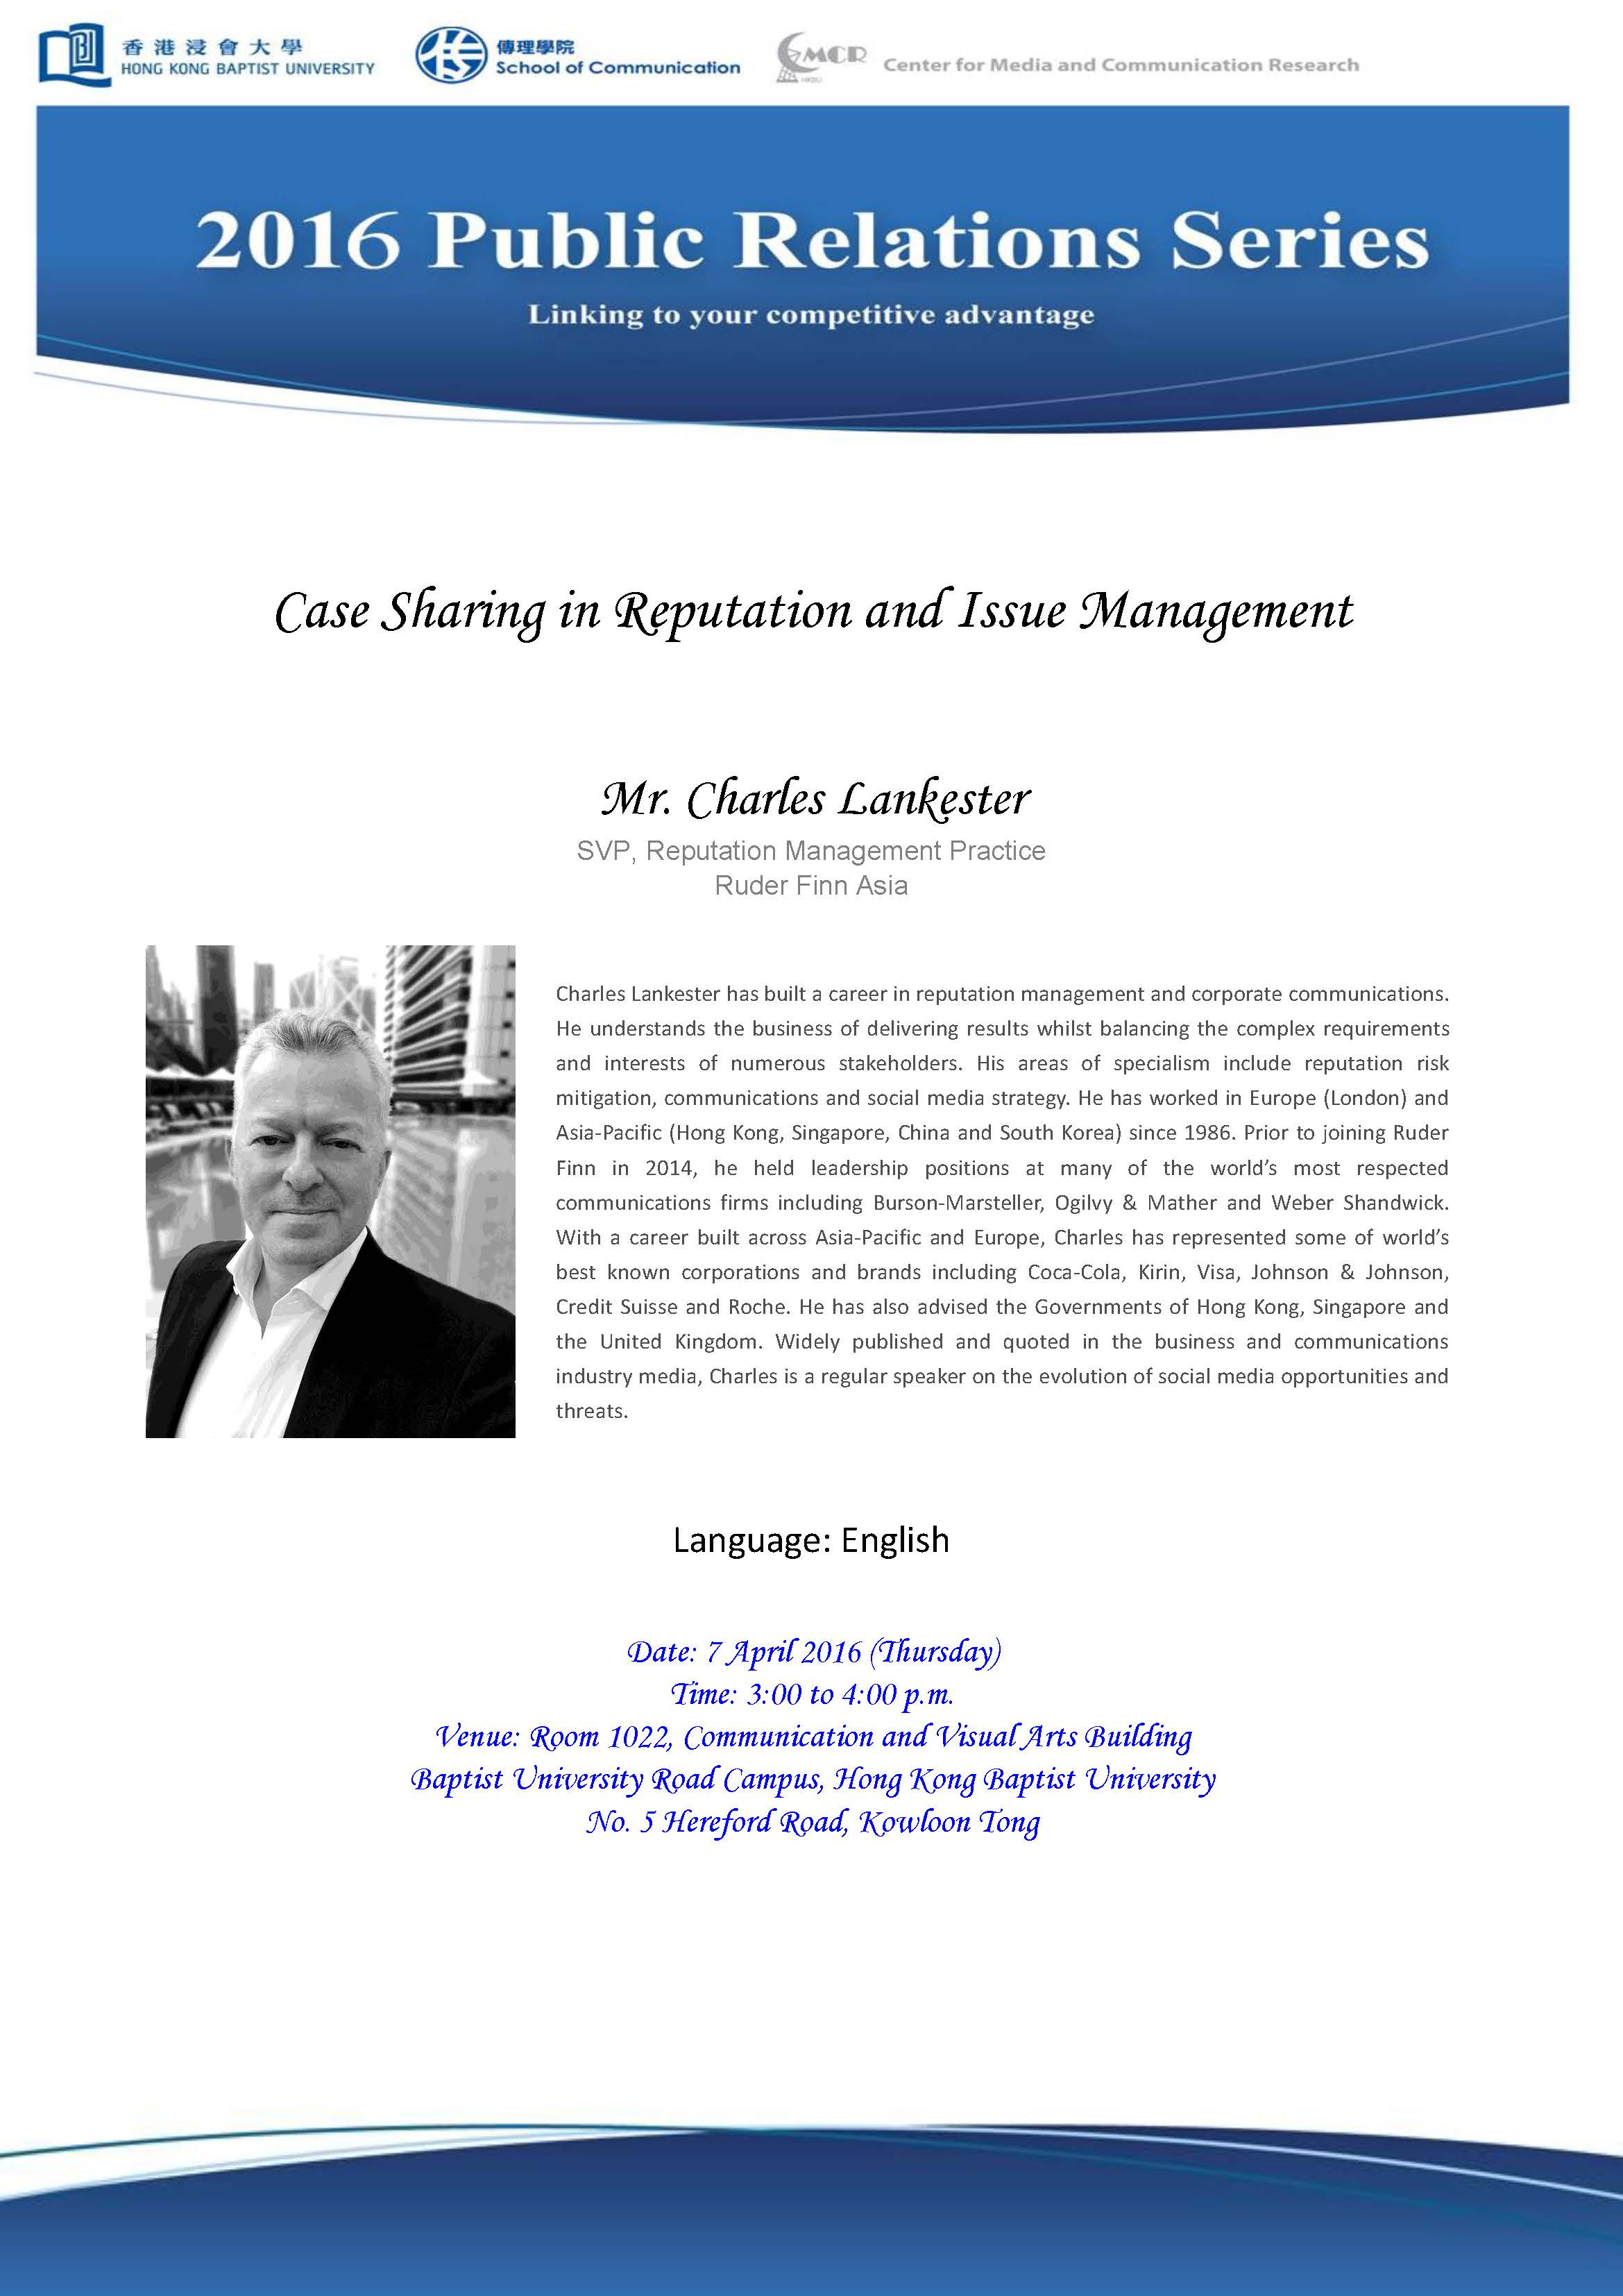 Lankester Case Sharing in Reputation and Issue Management